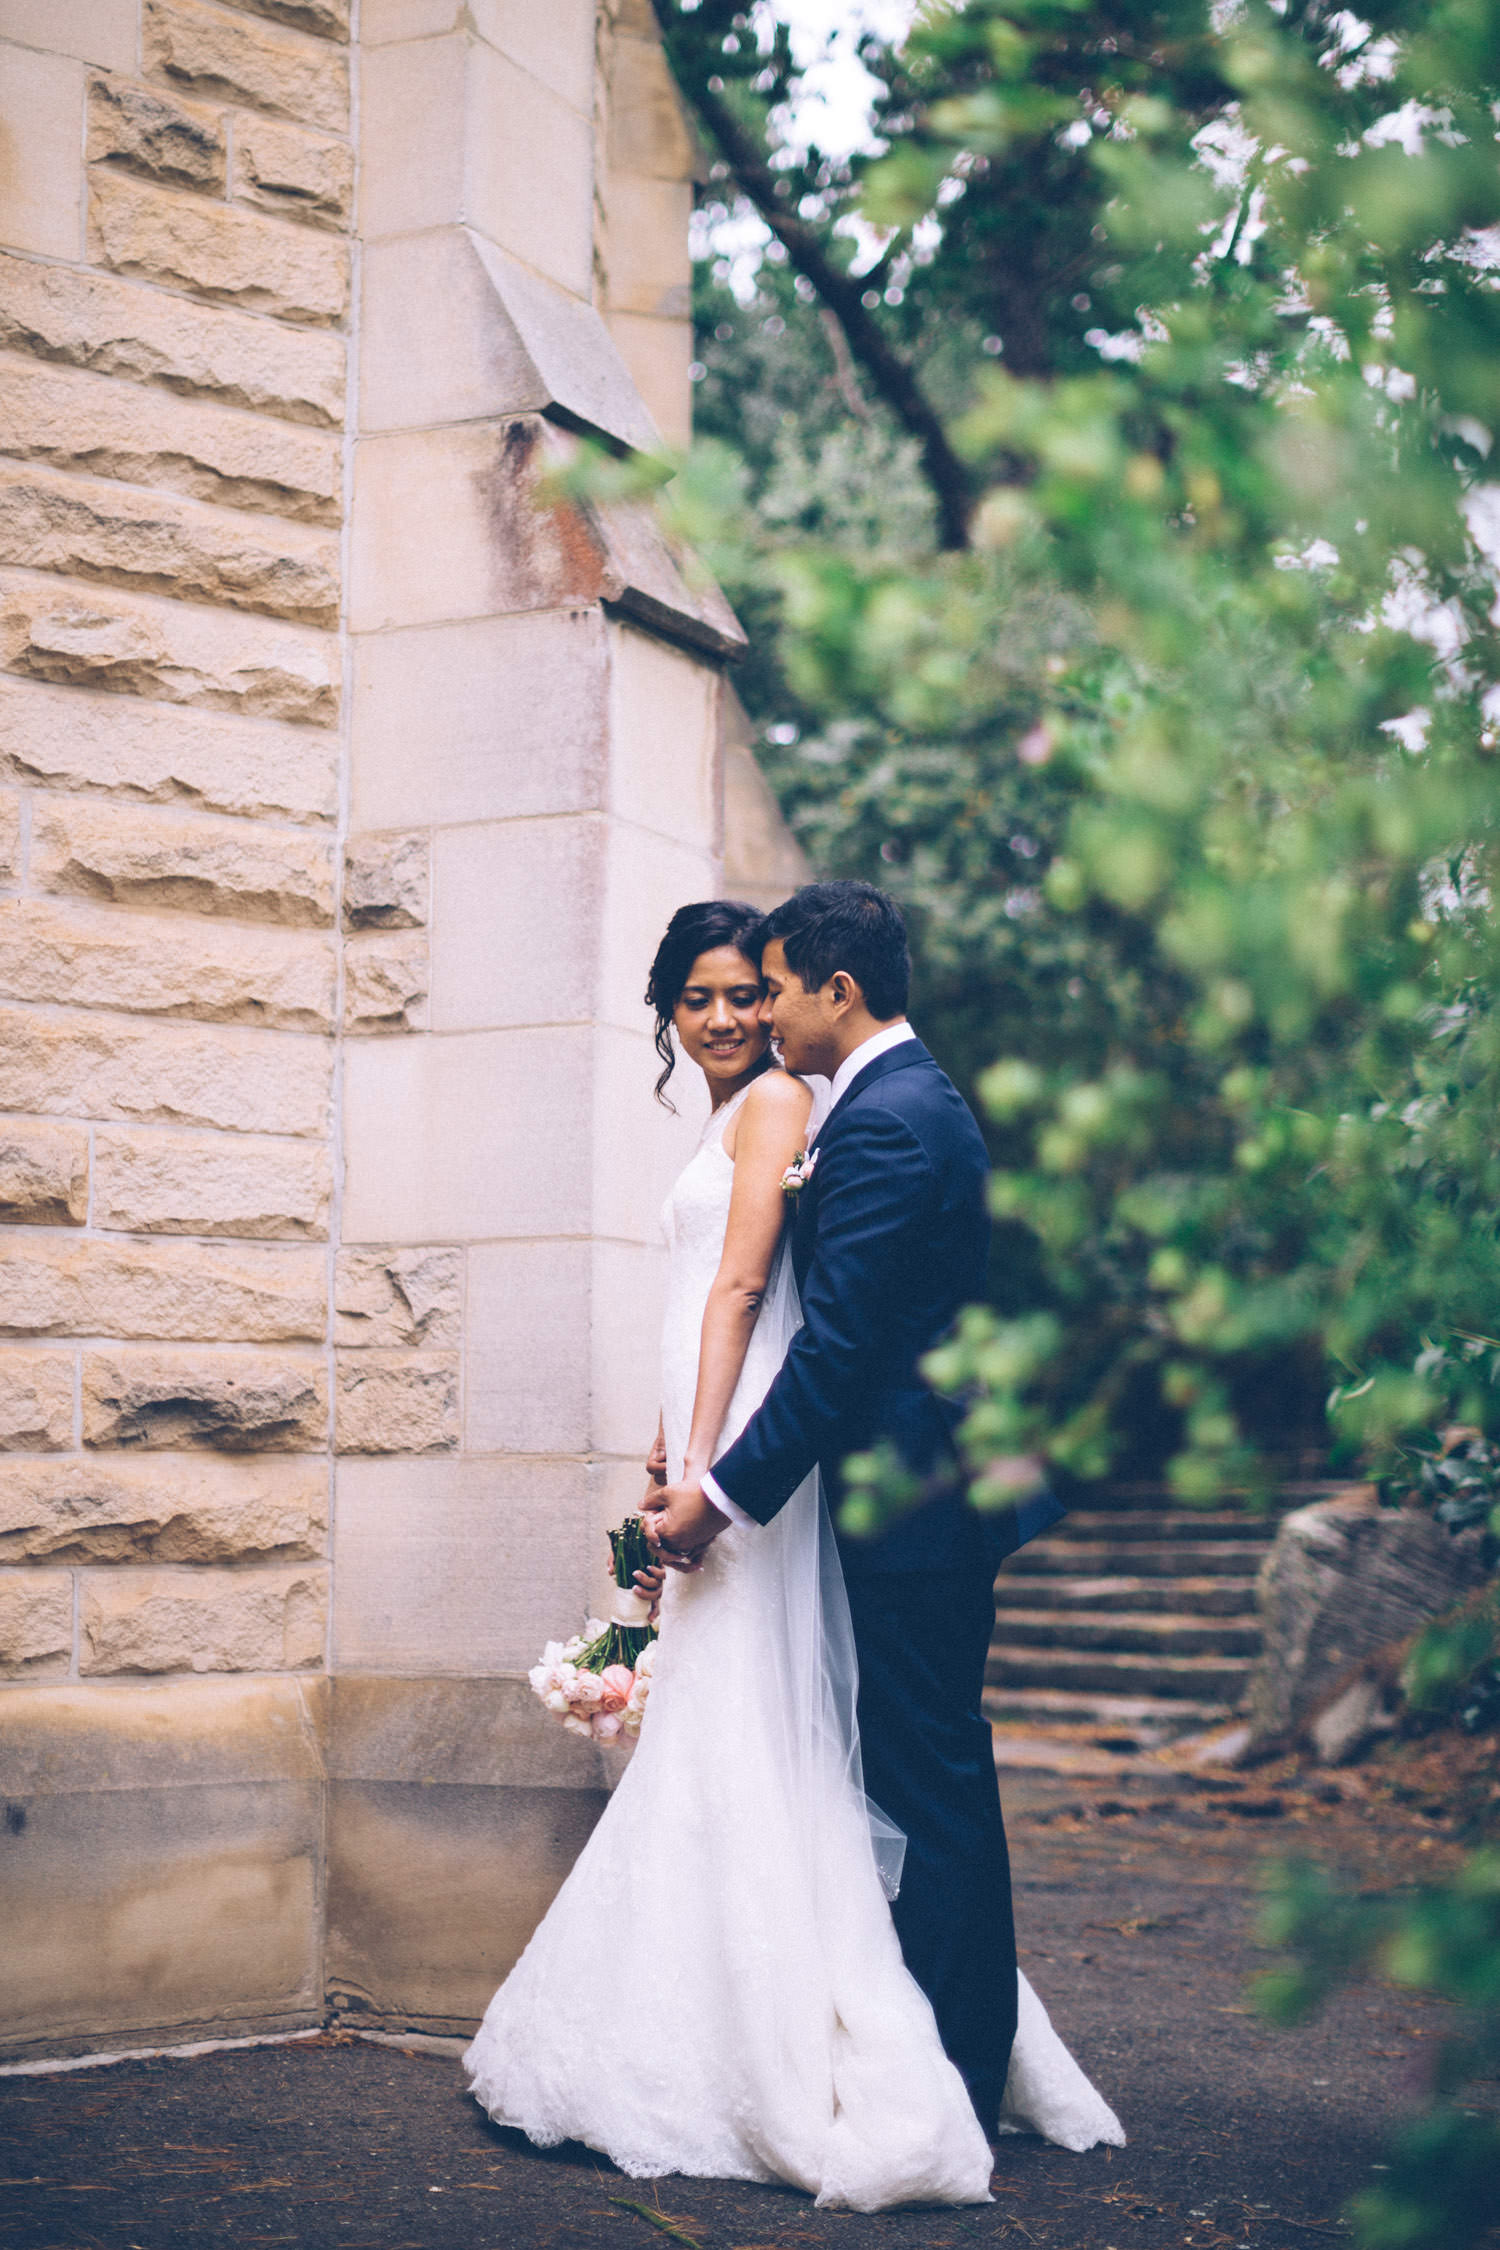 Emily & Sherwin Married-130.jpg